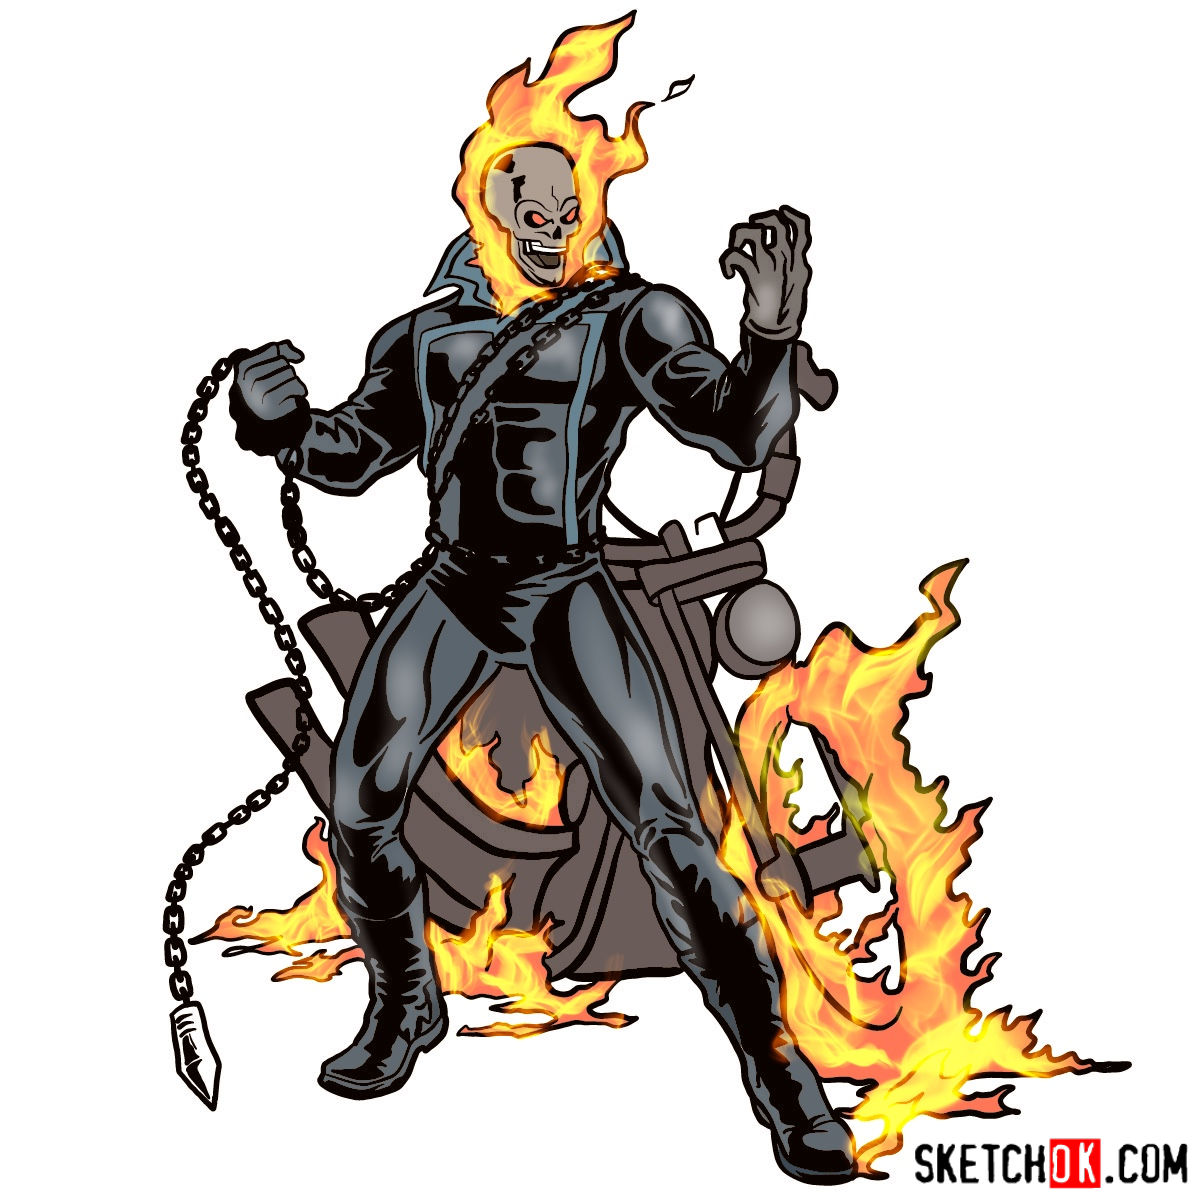 1200x1200 How To Draw Ghost Rider With His Flaming Bike